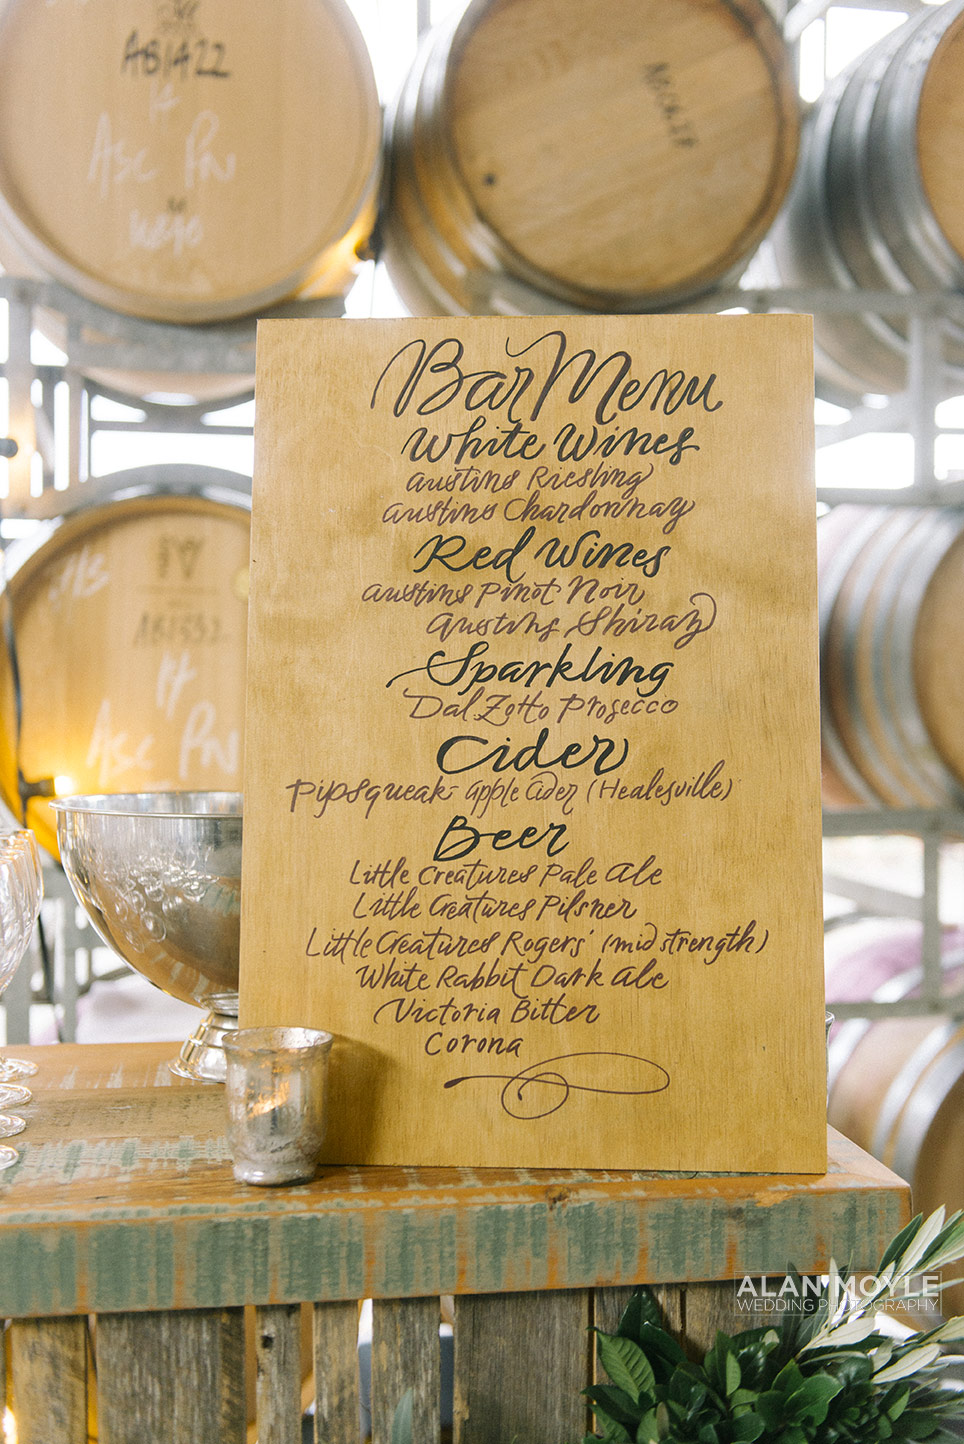 1405austin-273weddings_of_desire_melbourne_styling_event_geelong_alan_moyle_vineyard_winery_caligraphy_laura_sprout_hire_bayside.jpg